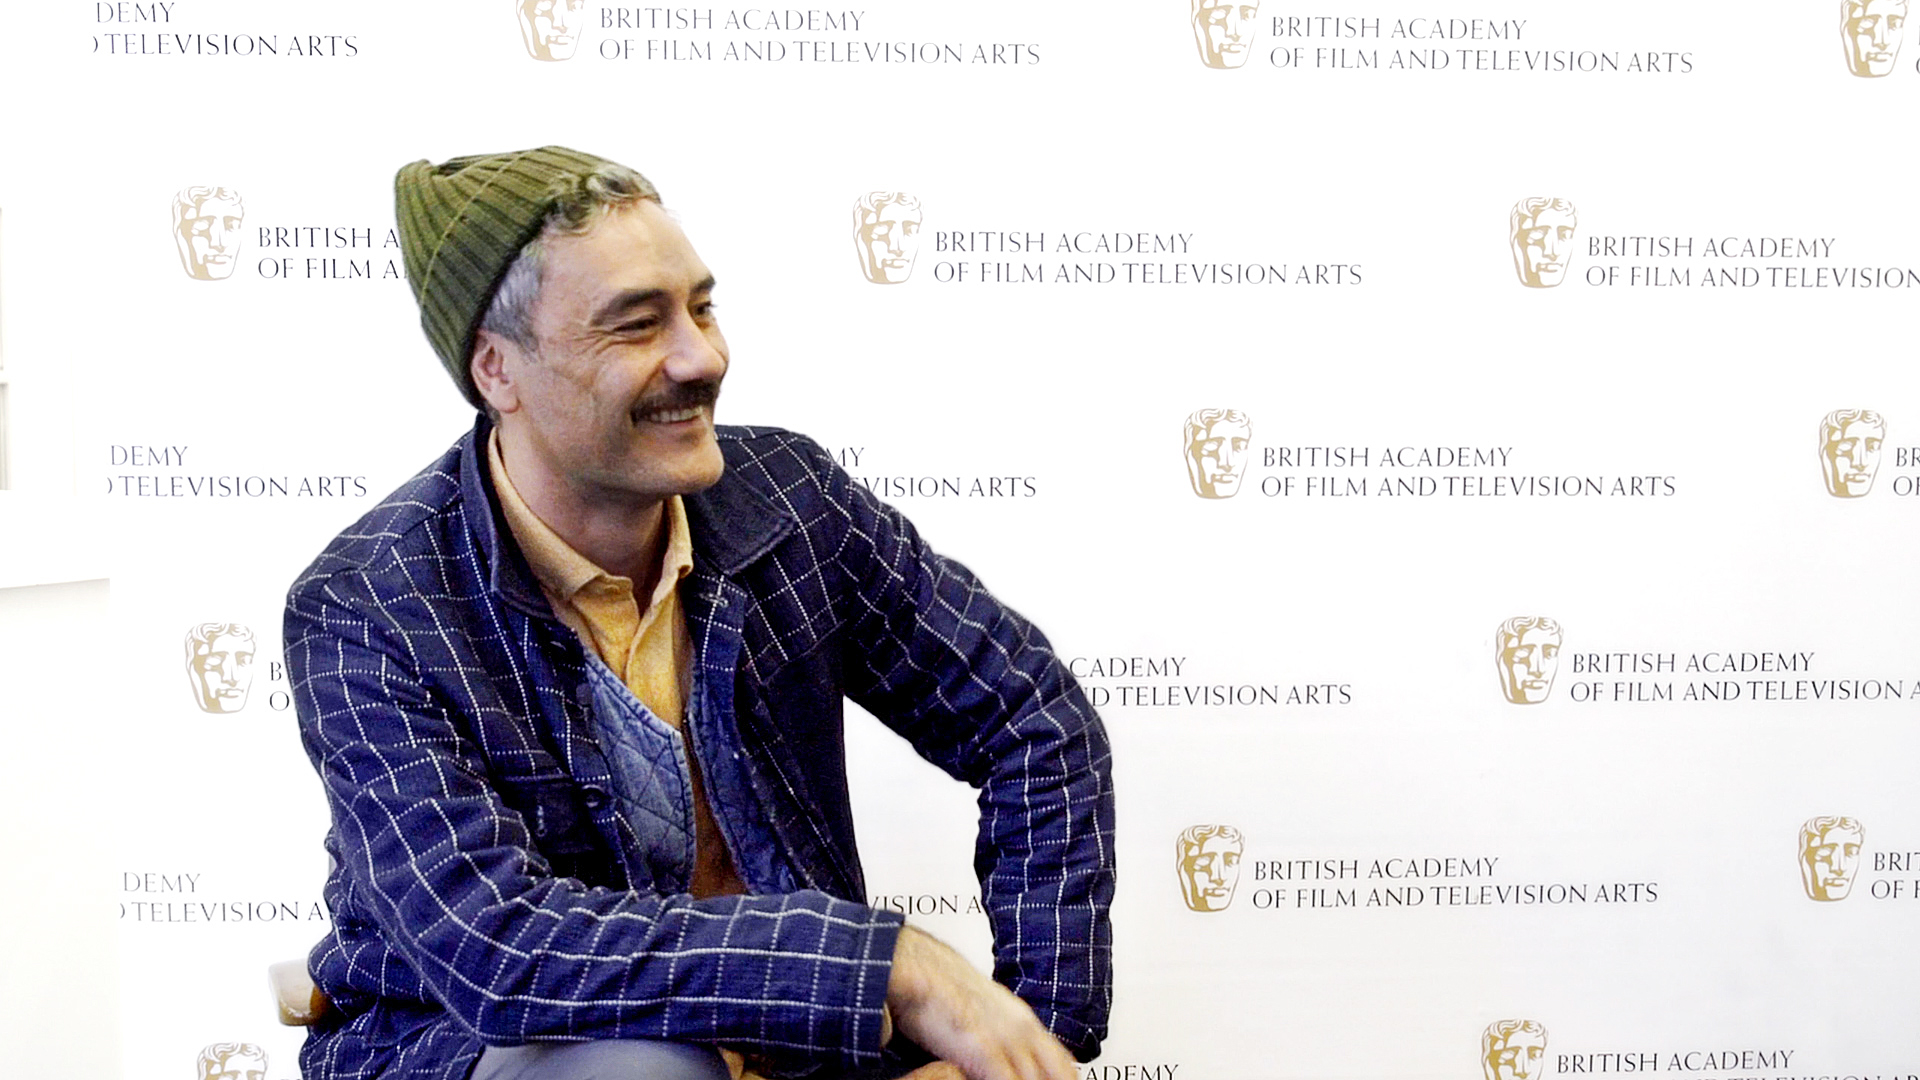 Thor Ragnarok director Taika Waititi on playing Hitler and shooting the world through a 'fantastical lens'